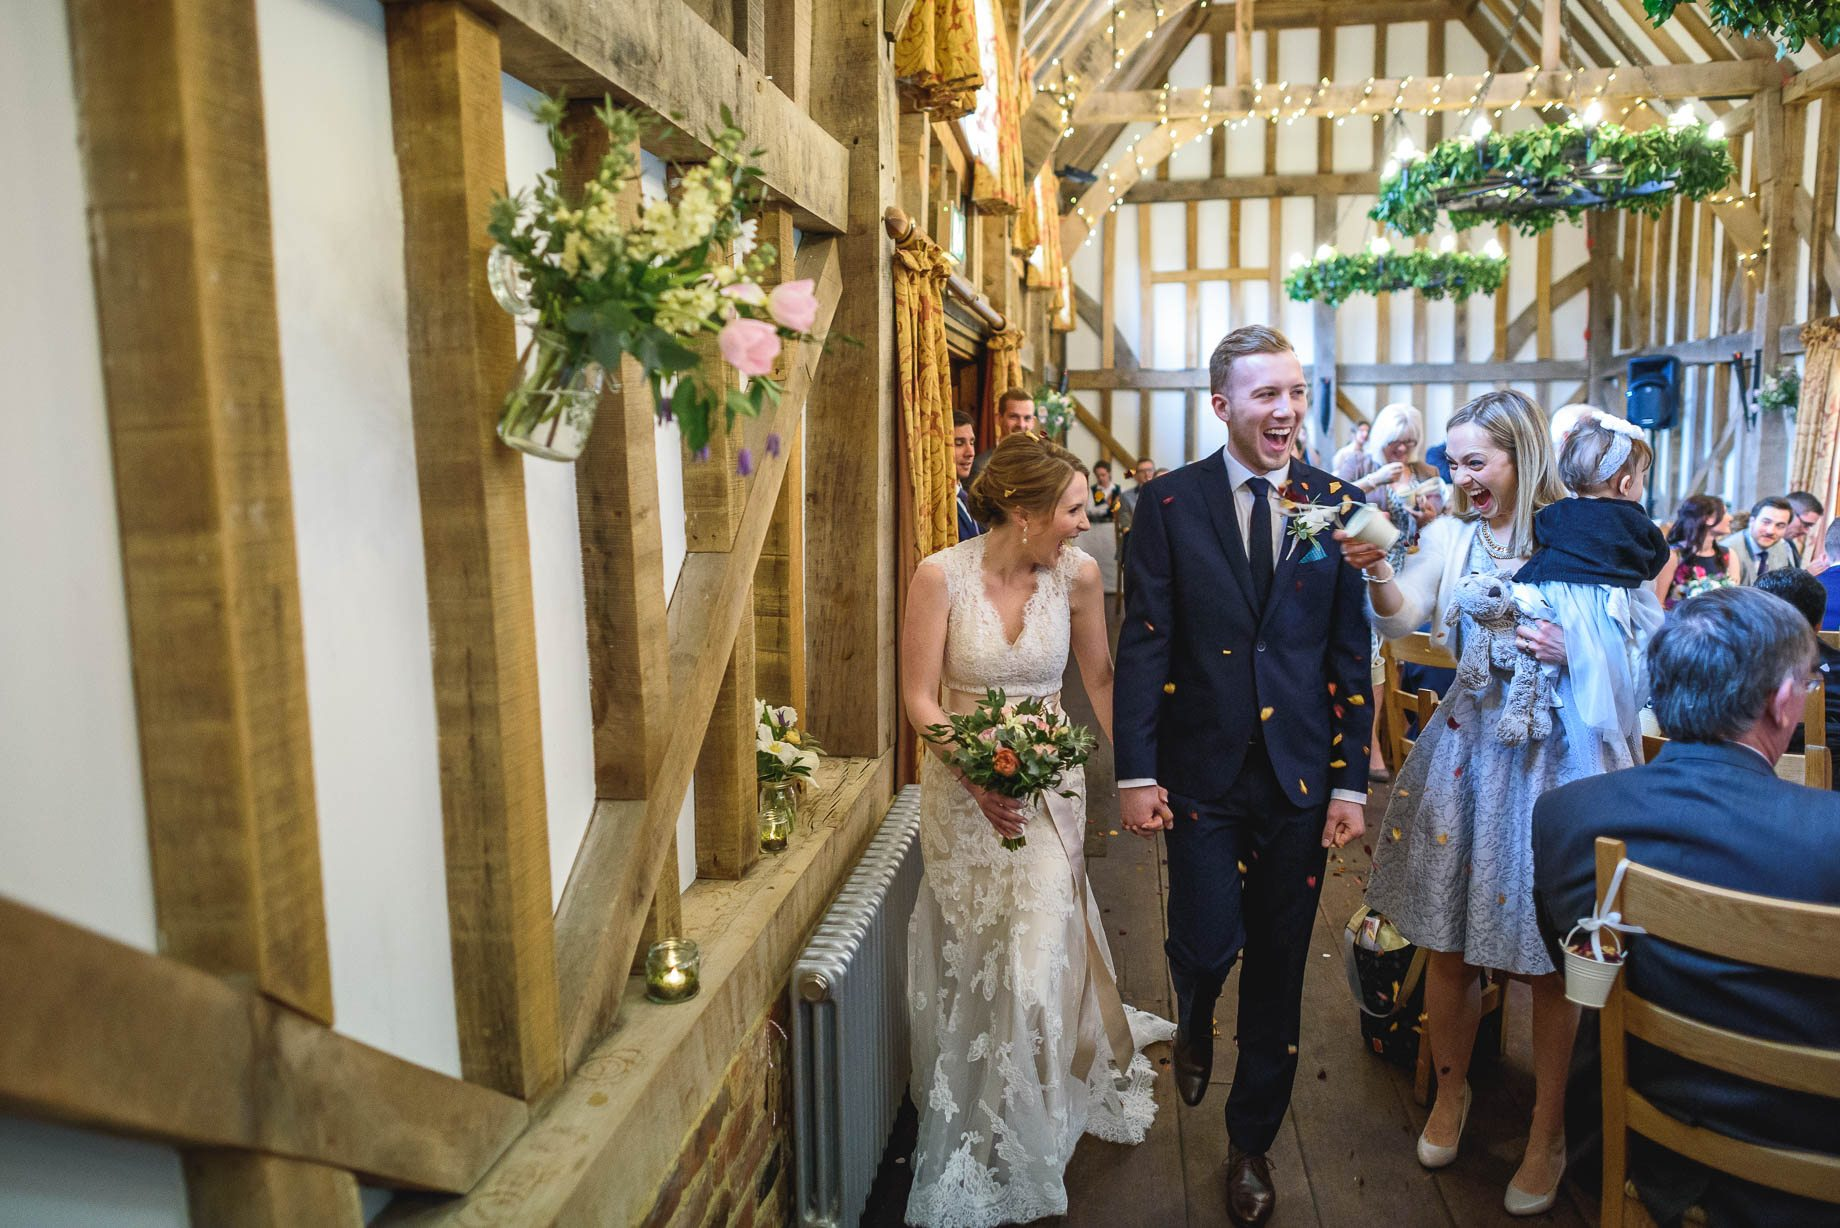 Surrey Wedding Photography by Guy Collier - Becca and James (56 of 145)